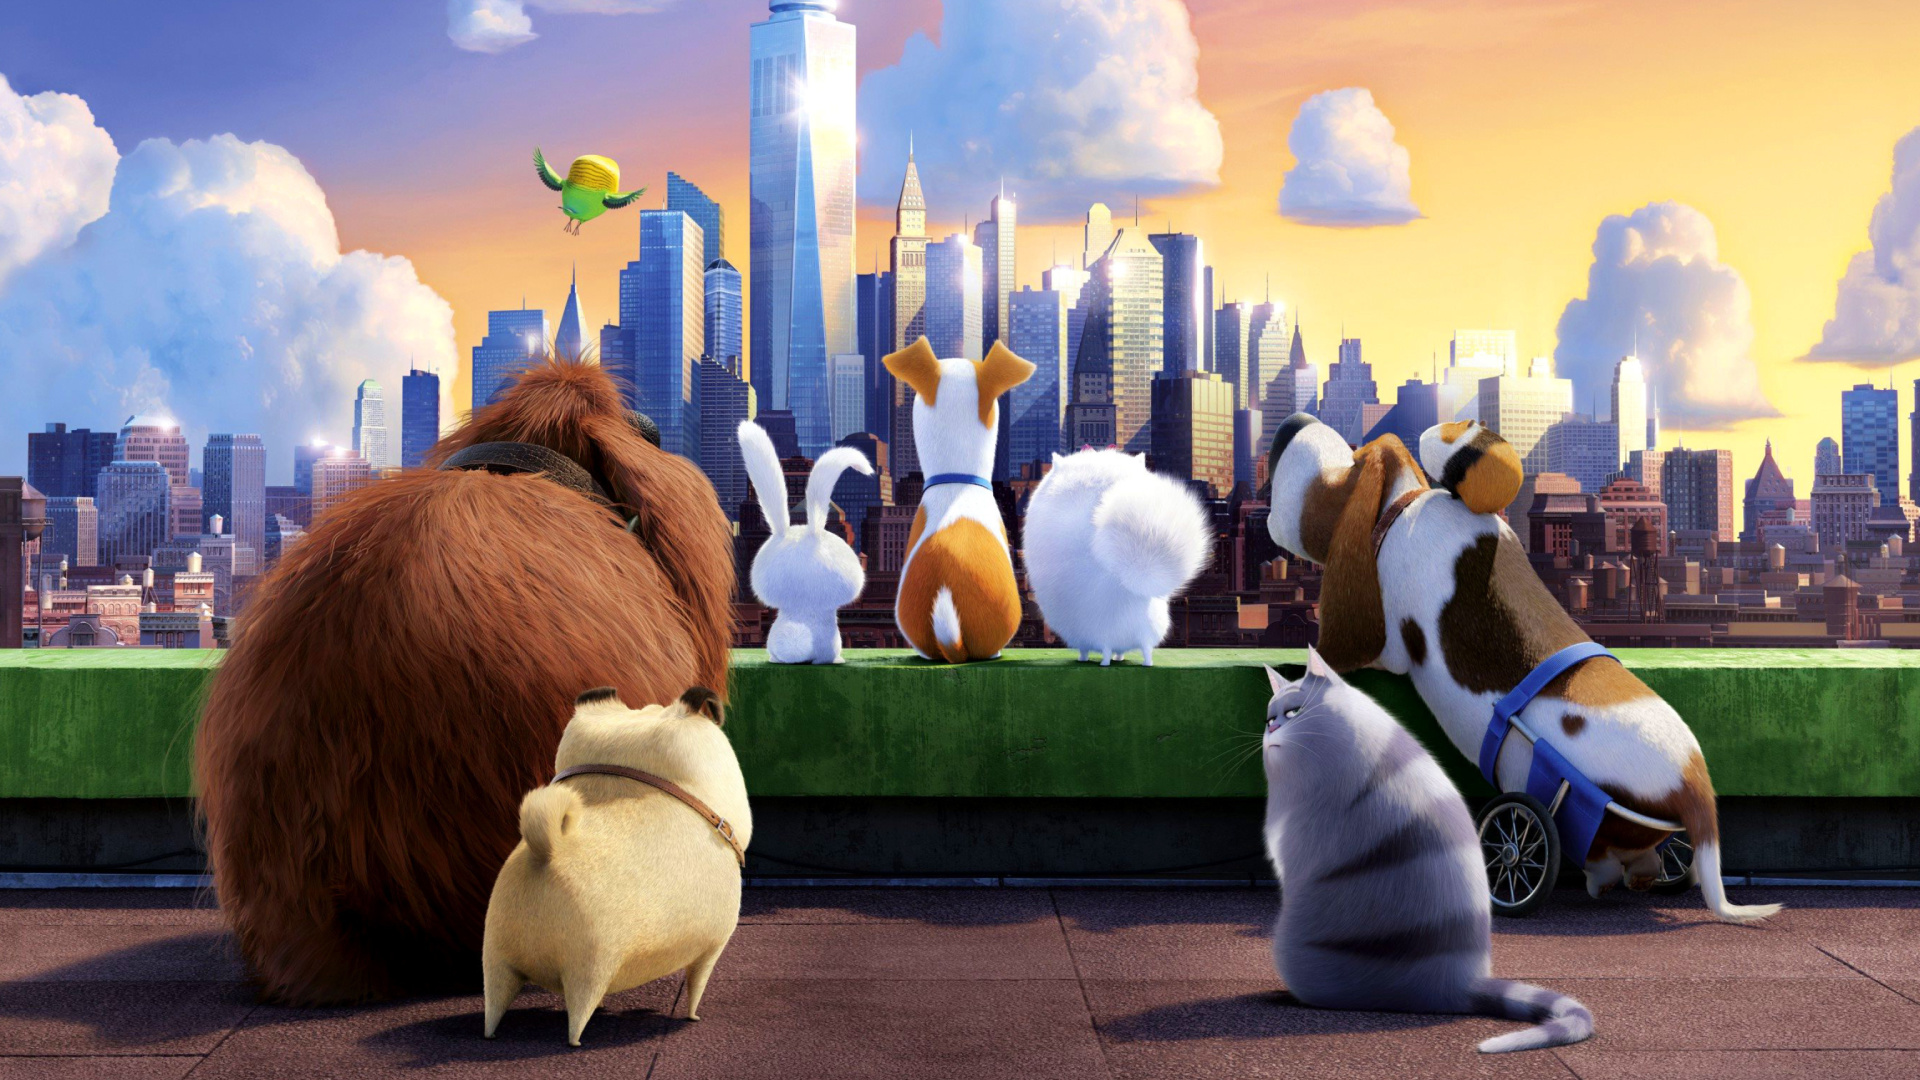 Secret Life Of Pets Wallpaper: The Secret Life Of Pets Gang Wallpaper For Desktop